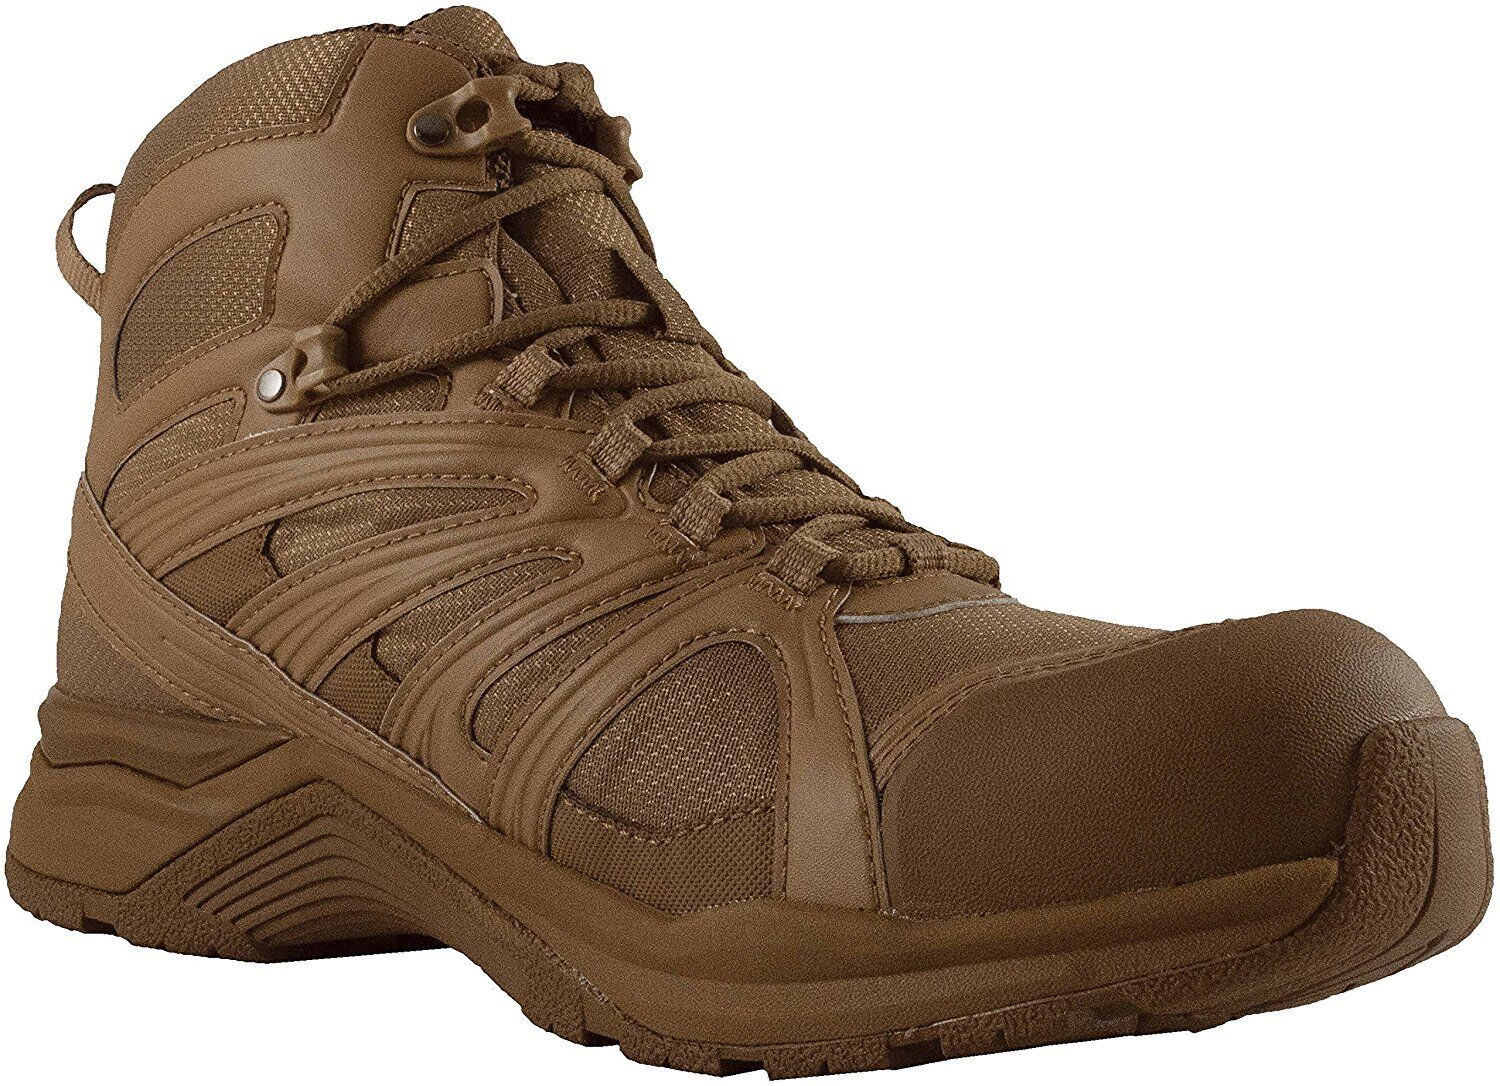 Altama 353203 Aboottabad Trail Runner Tactical Mid Top Combat Boot - Coyote